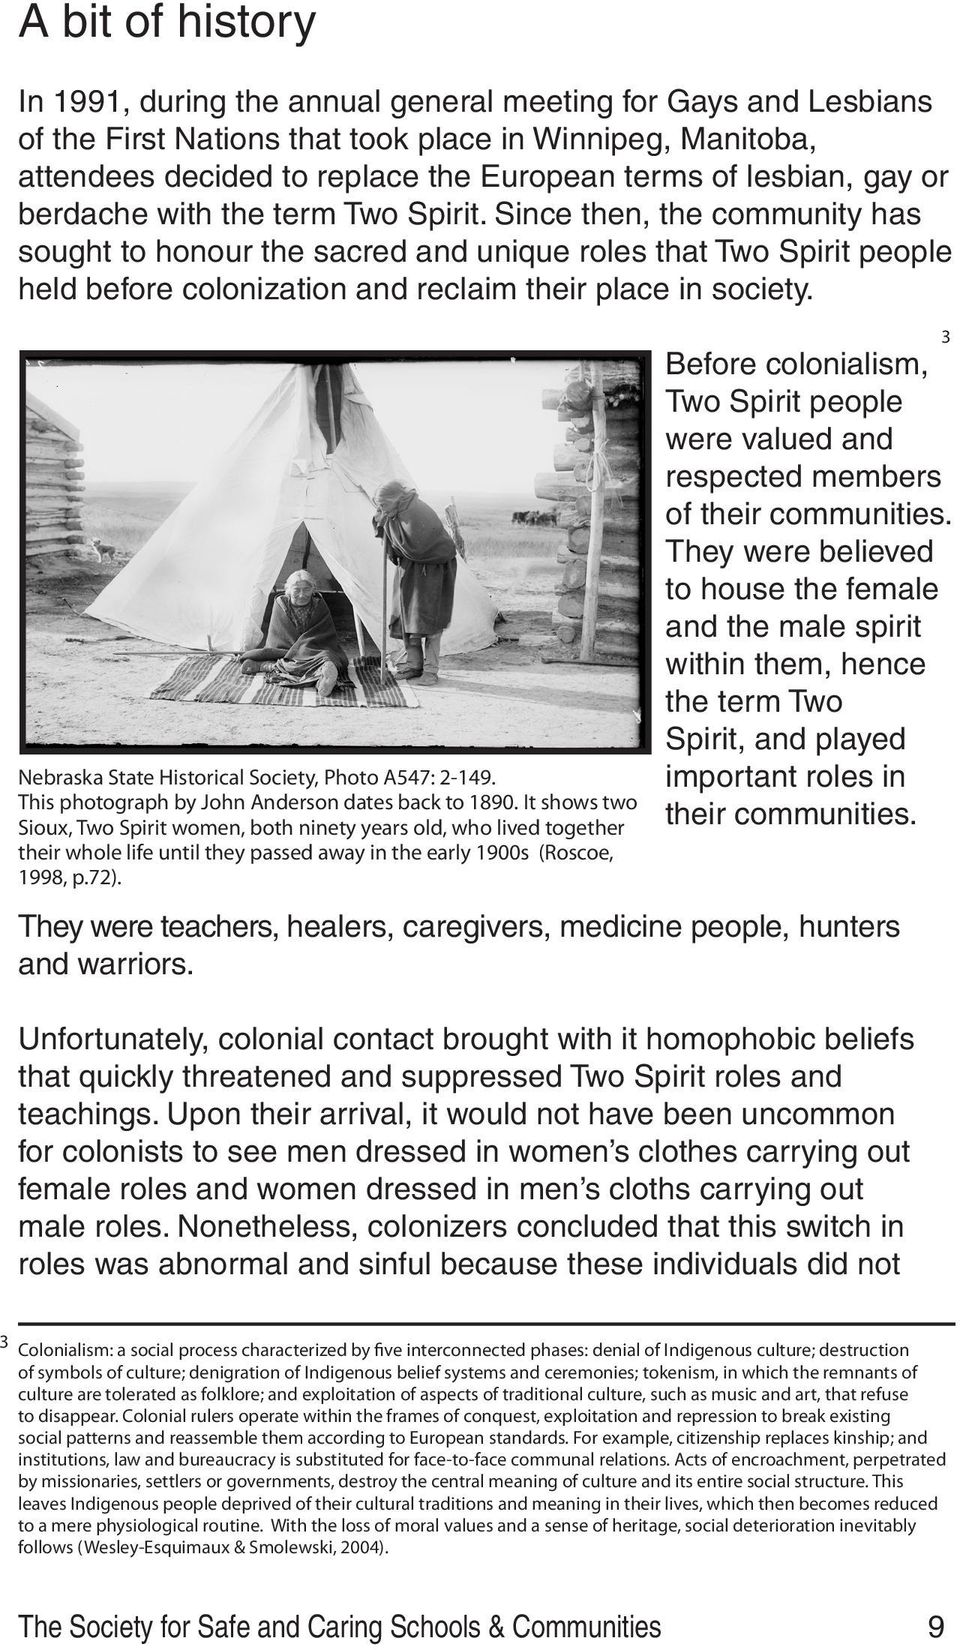 Since then, the community has sought to honour the sacred and unique roles that Two Spirit people held before colonization and reclaim their place in society.